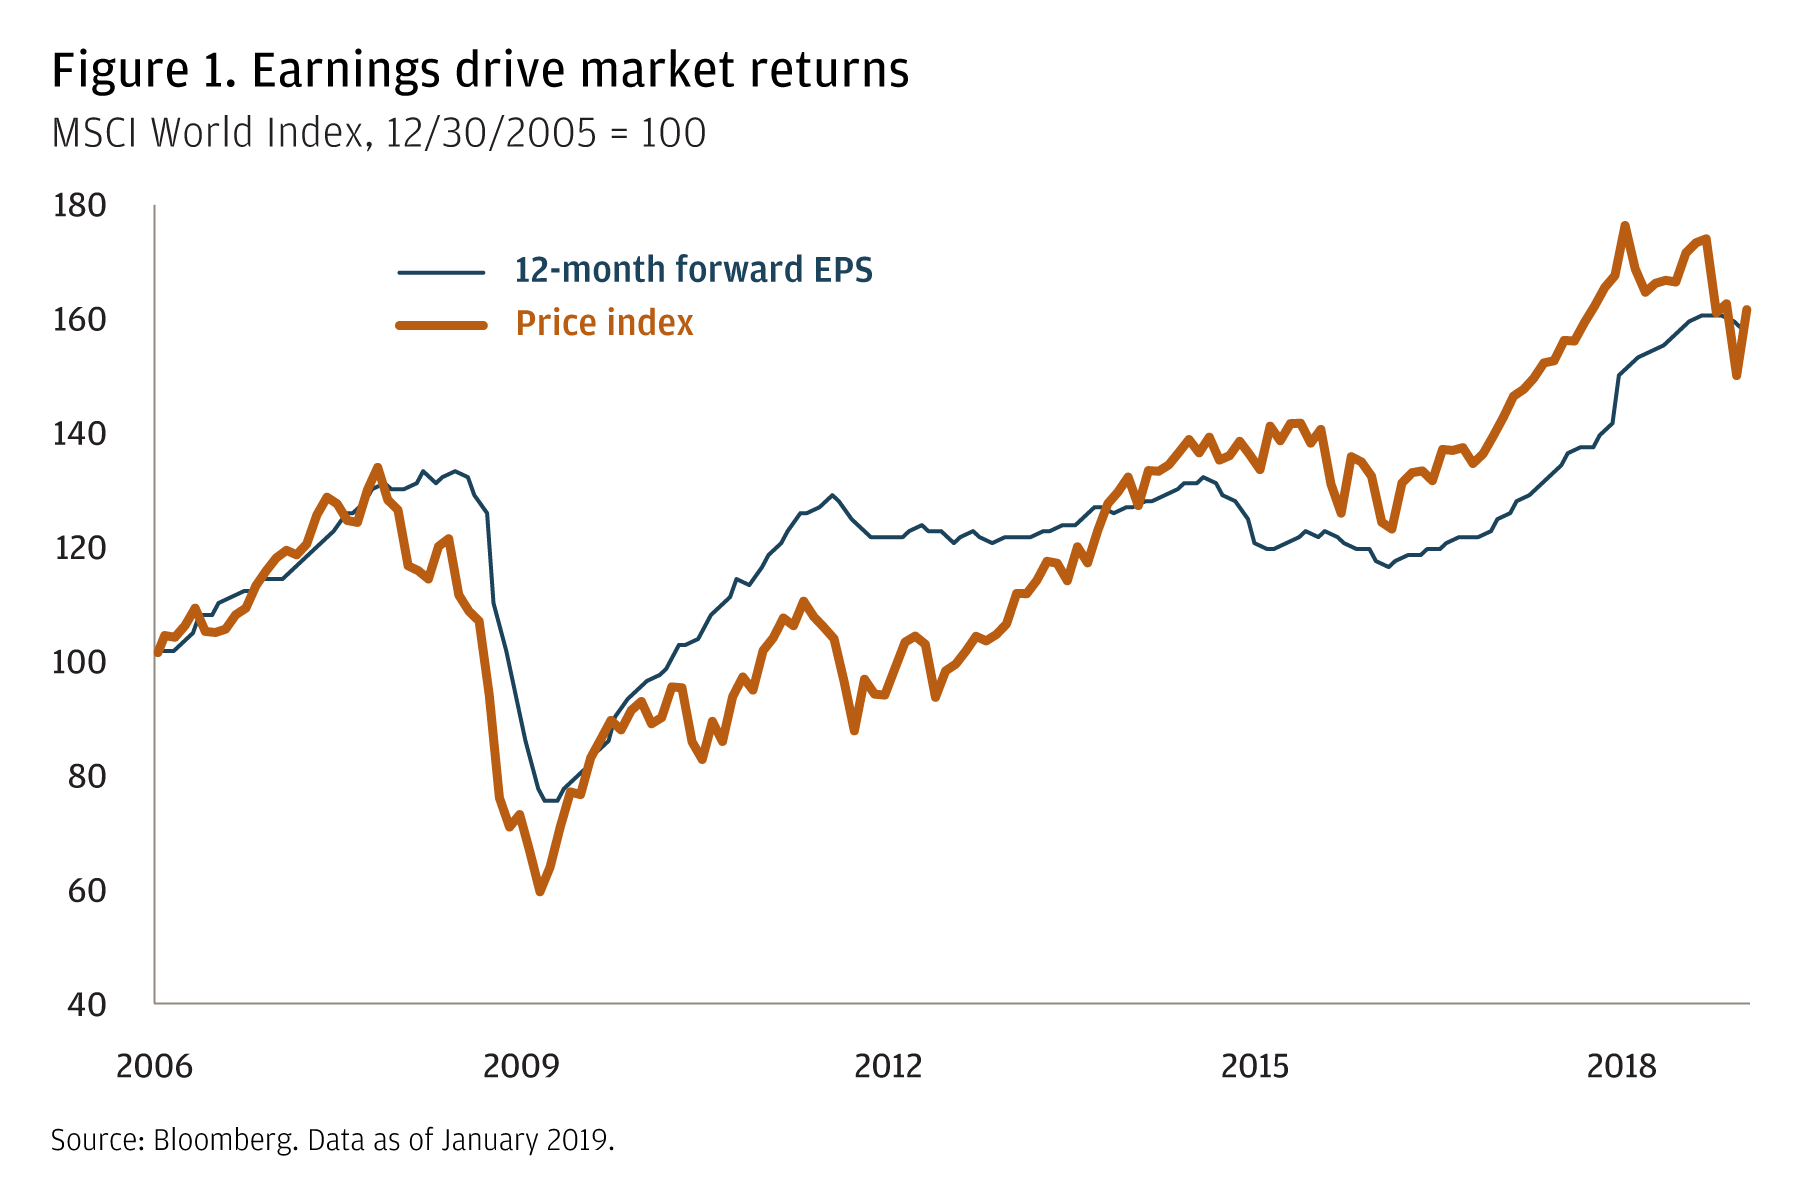 A line graph shows 12-month forward Earnings Per Share and the Price Index between 2006 and January 2019. The line tends to trend downwards until about 2009, and trends upwards during periods thereafter, with both lines at about 160 today.